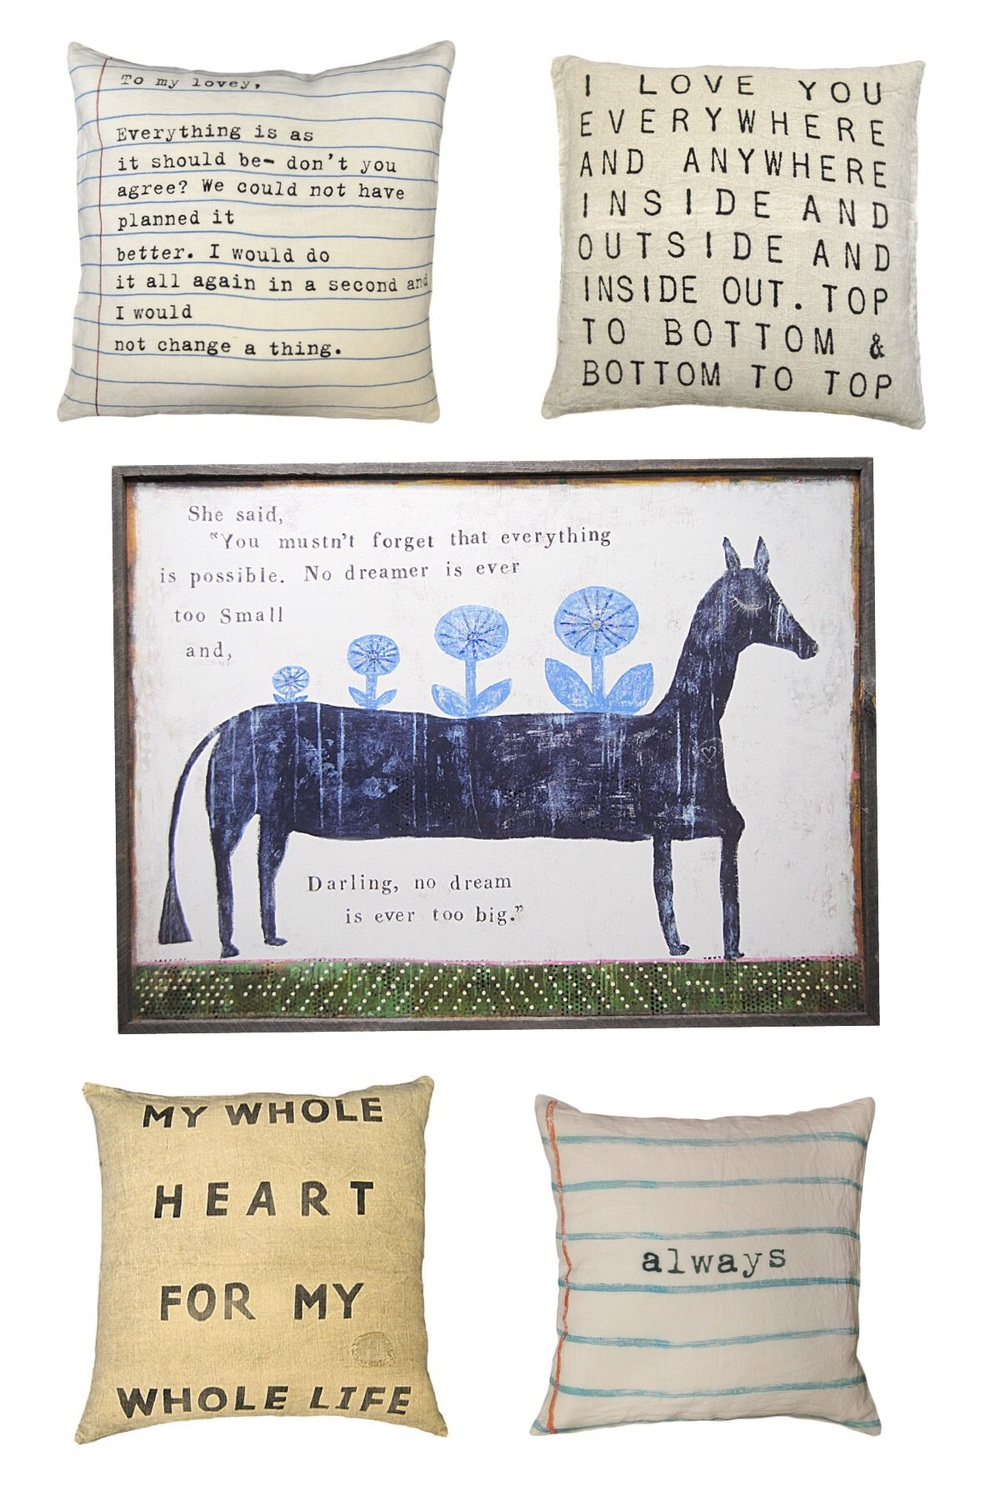 Available through Savvy: Wonderful Folk Art-inspired prints andpillows made from linen...and heart. Book Collection Art Prints (below)- hand framed in reclaimed wood.Each print is available in White, Cream, and Charcoal. 2' x 3' and 3' x 4'.